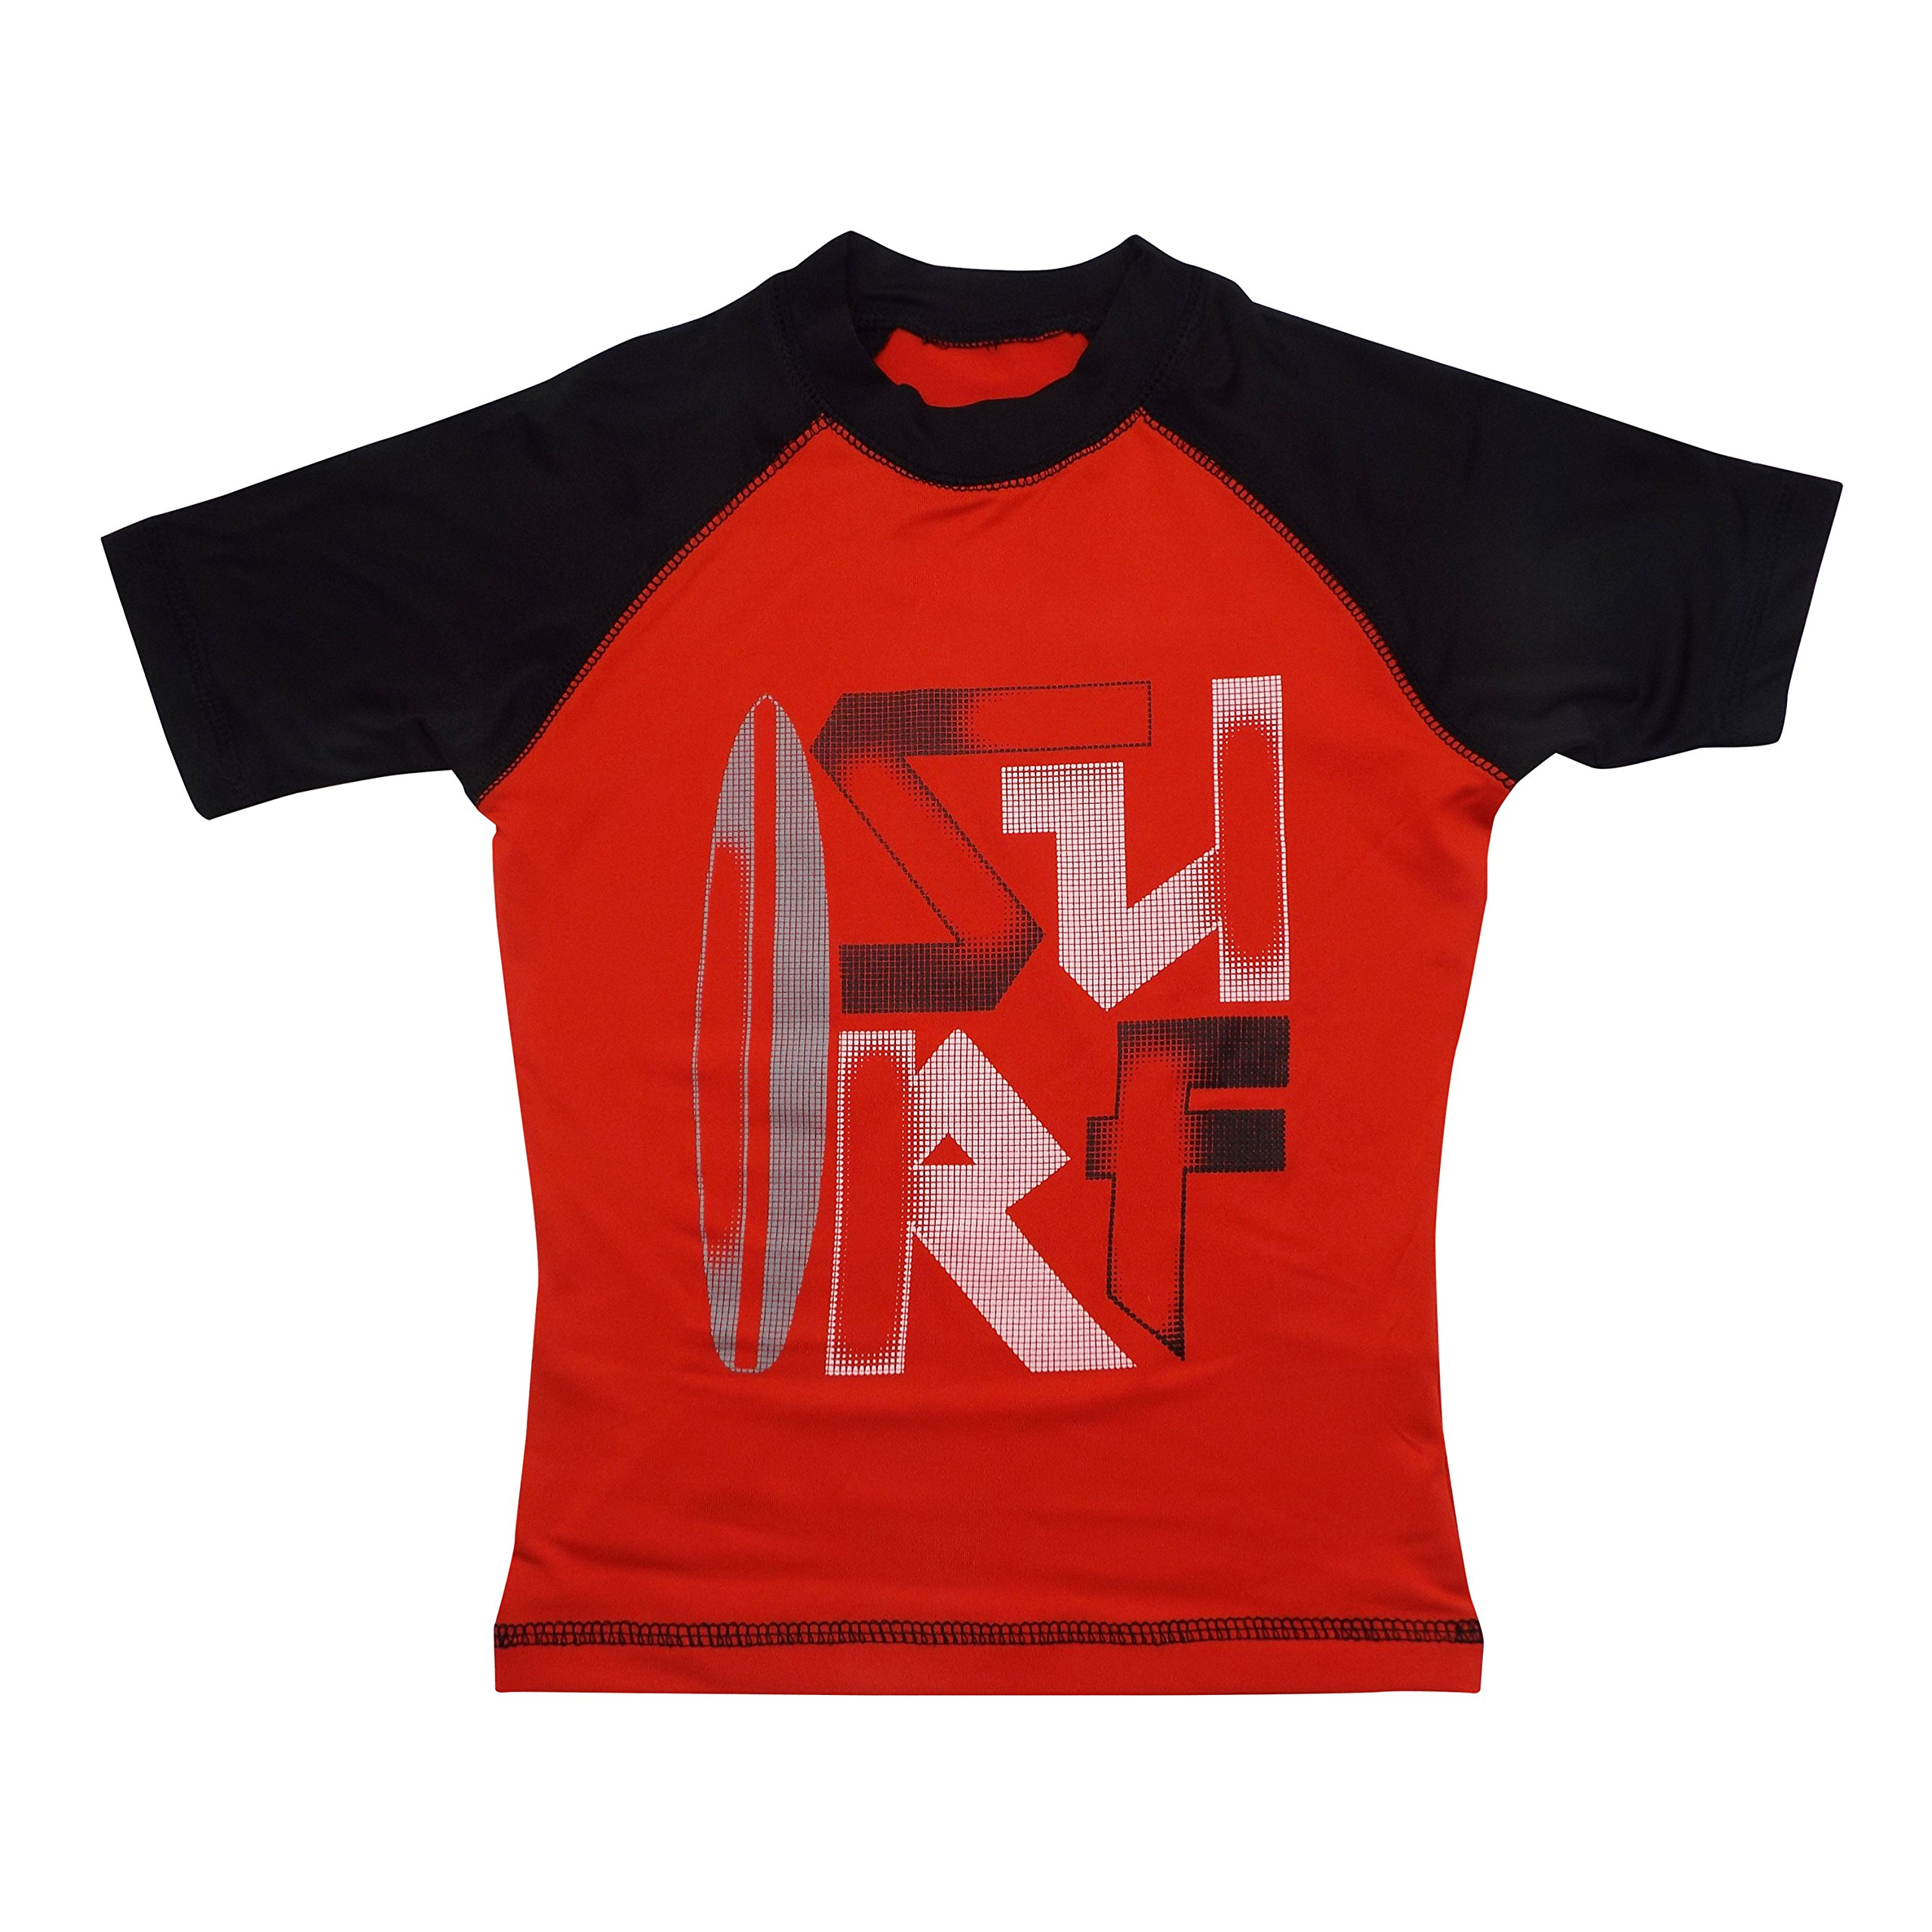 Boys' Short-Sleeve Rashguard - ''Surf'' Red and Black Swim Shirt - Size 8-10